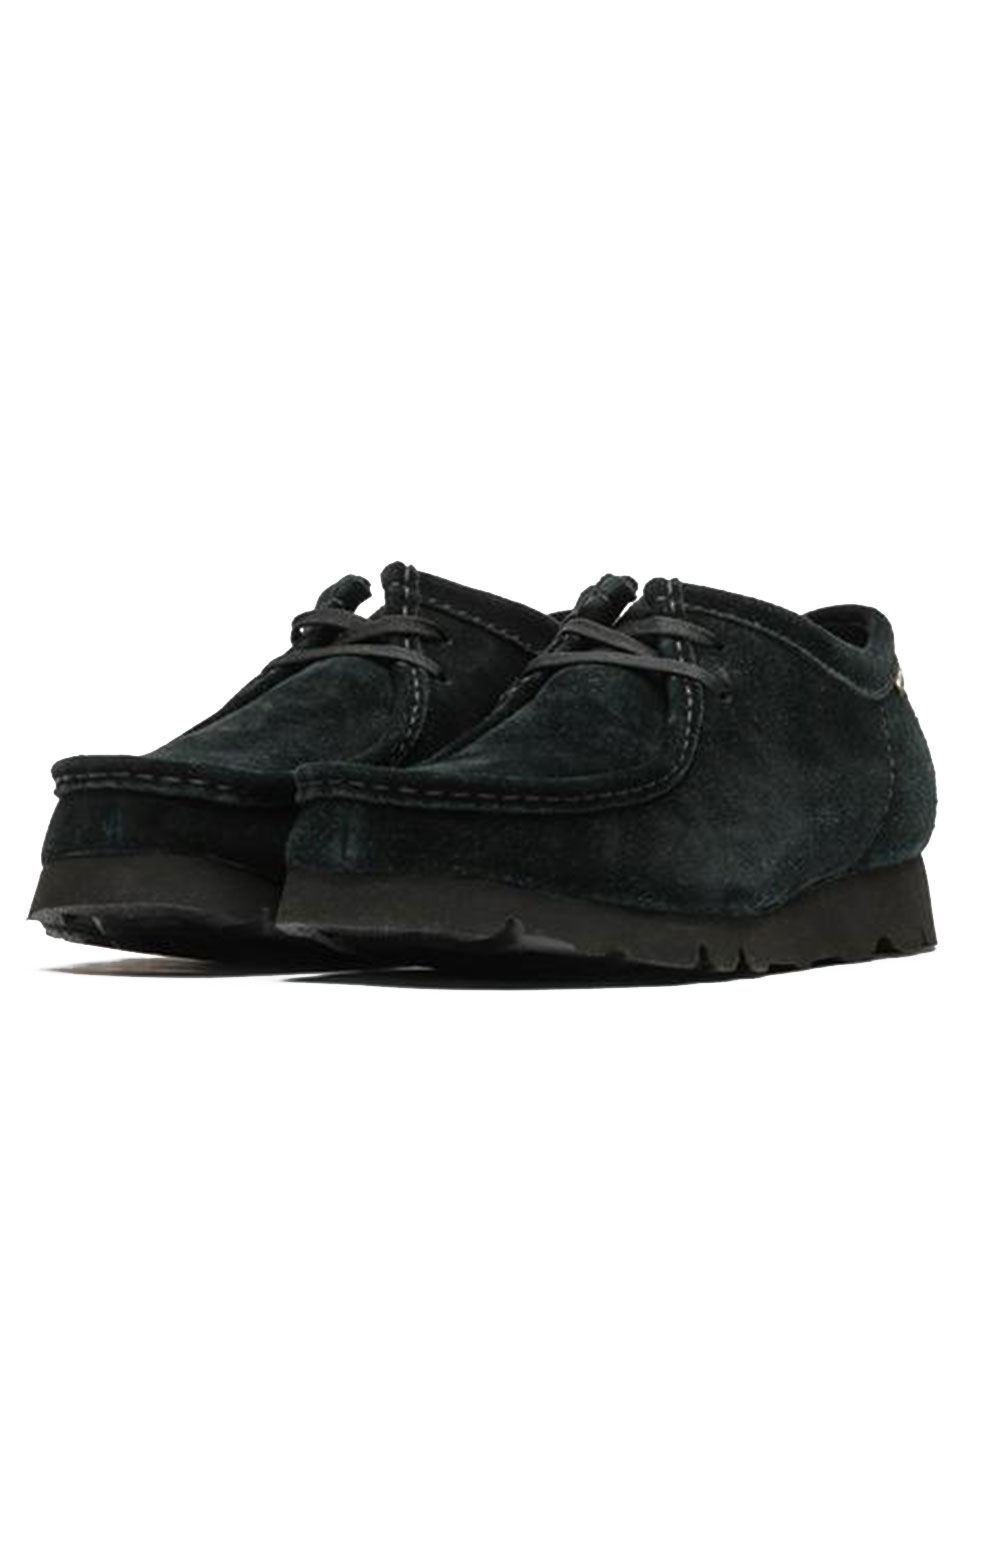 (49449) Wallabee GTX - Black 3